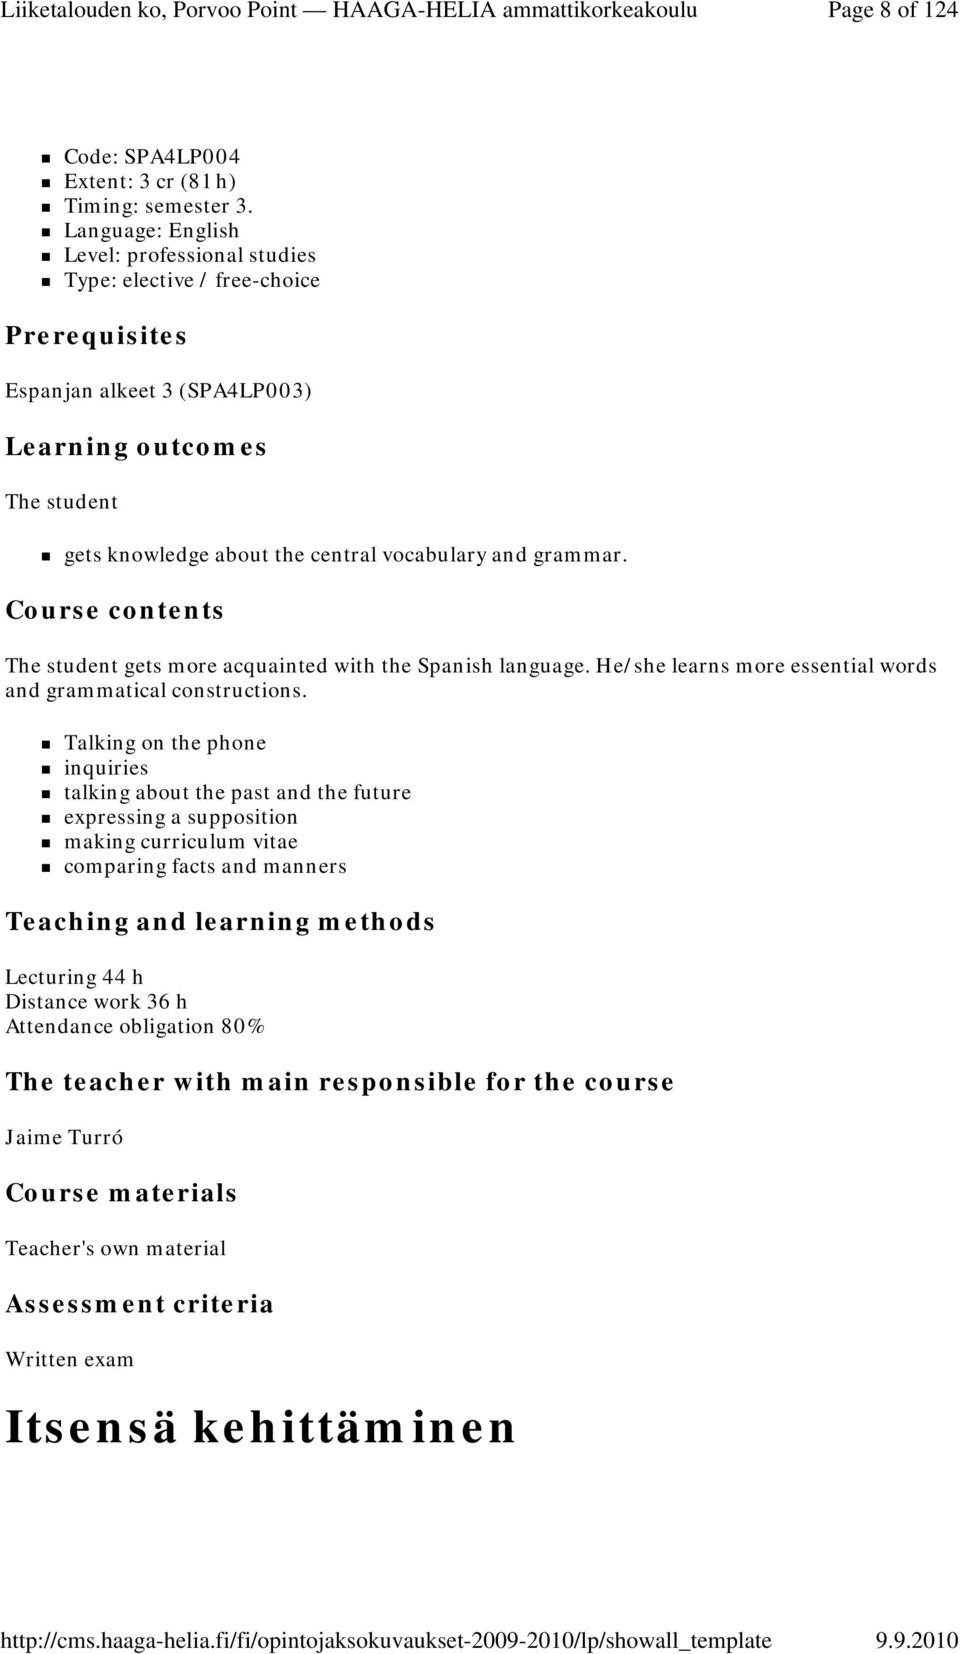 grammar. Course contents The student gets more acquainted with the Spanish language. He/she learns more essential words and grammatical constructions.